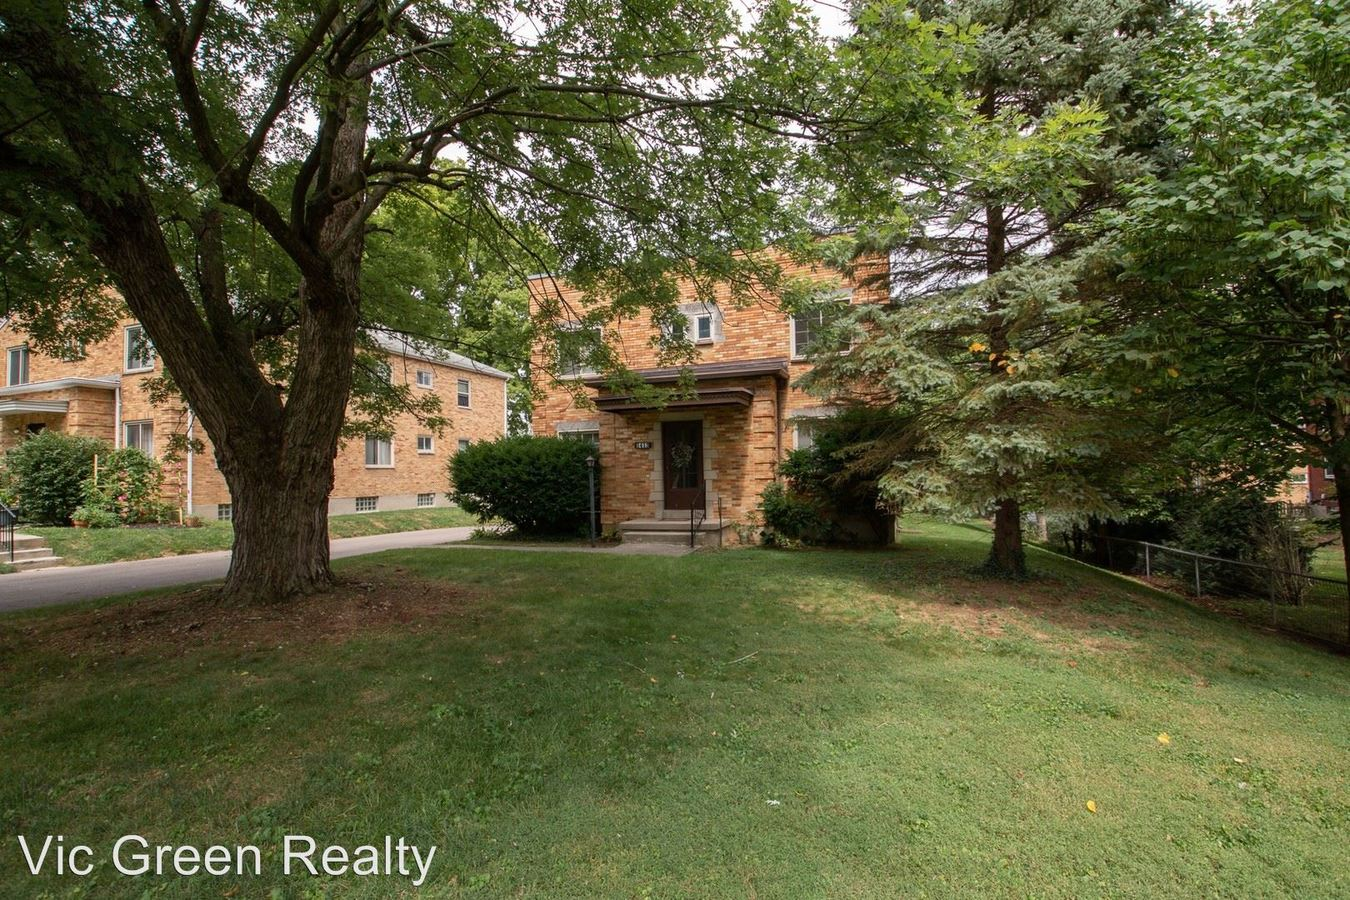 1 Bedroom 1 Bathroom Apartment for rent at 1413 Old Lane Dr in Kettering, OH